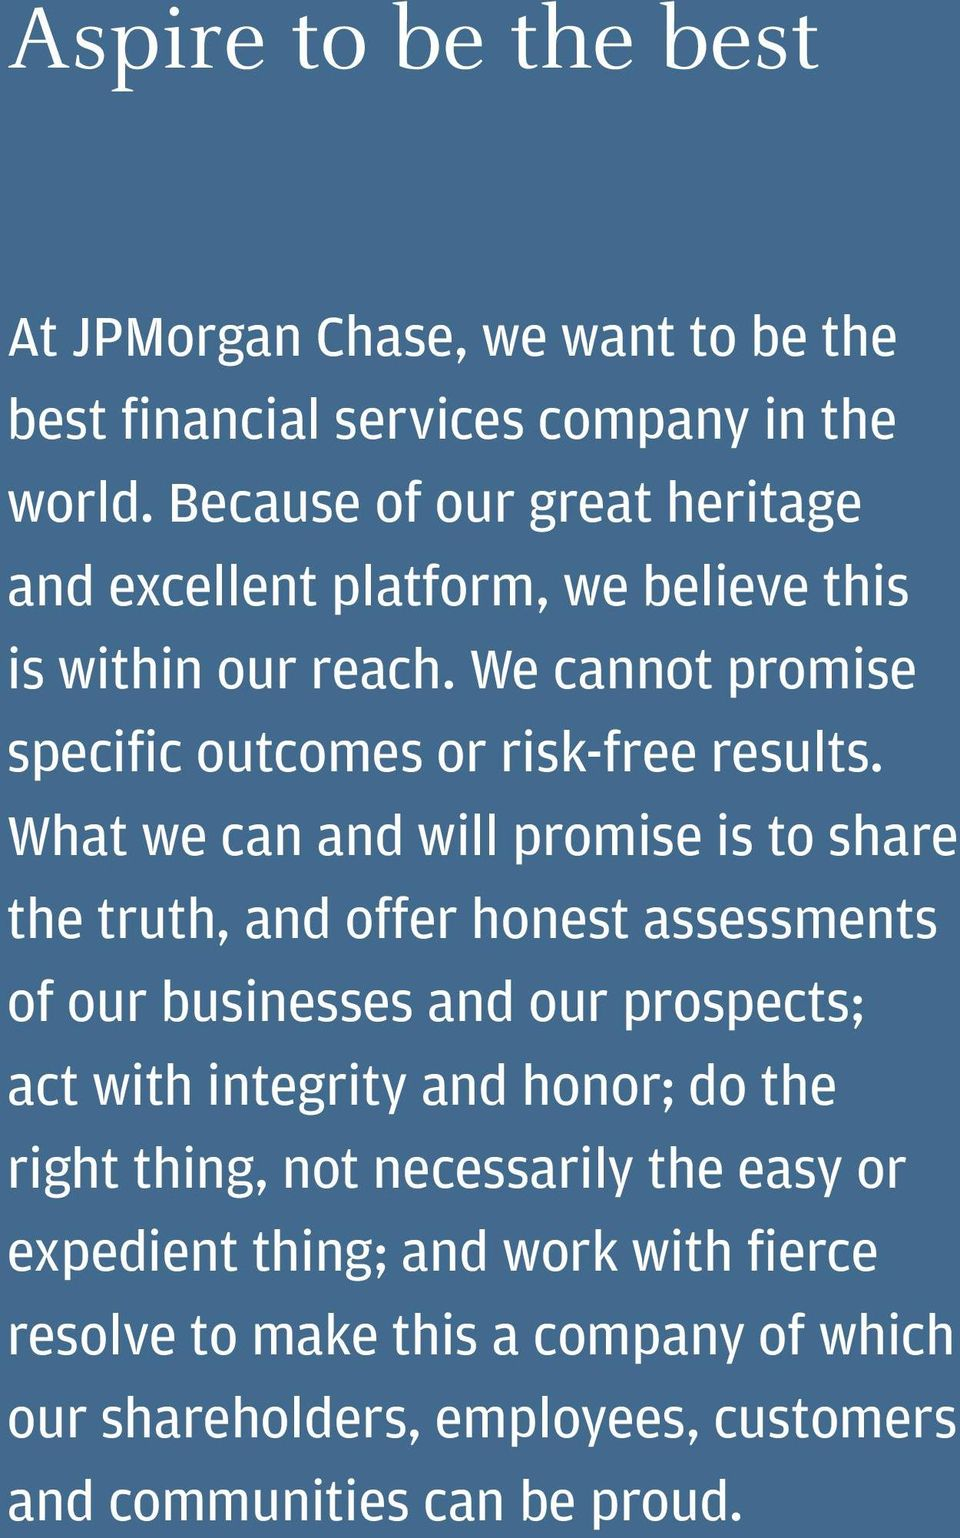 What we can and will promise is to share the truth, and offer honest assessments of our businesses and our prospects; act with integrity and honor;